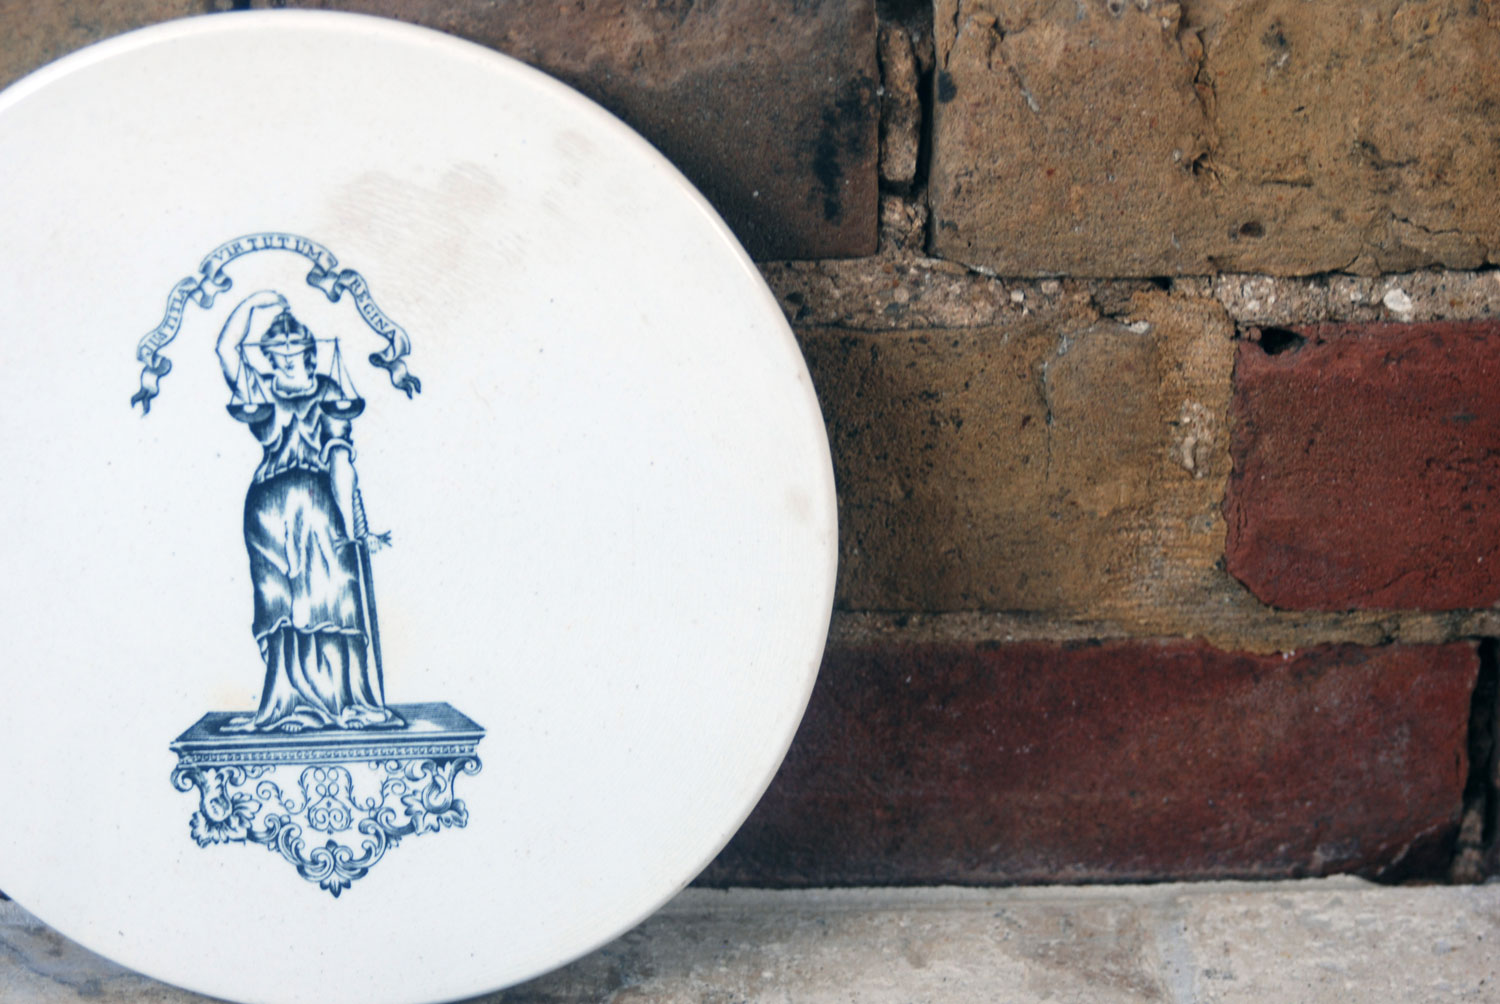 antique edwardian white ironstone scale plate cheeseboard justitia virtutum